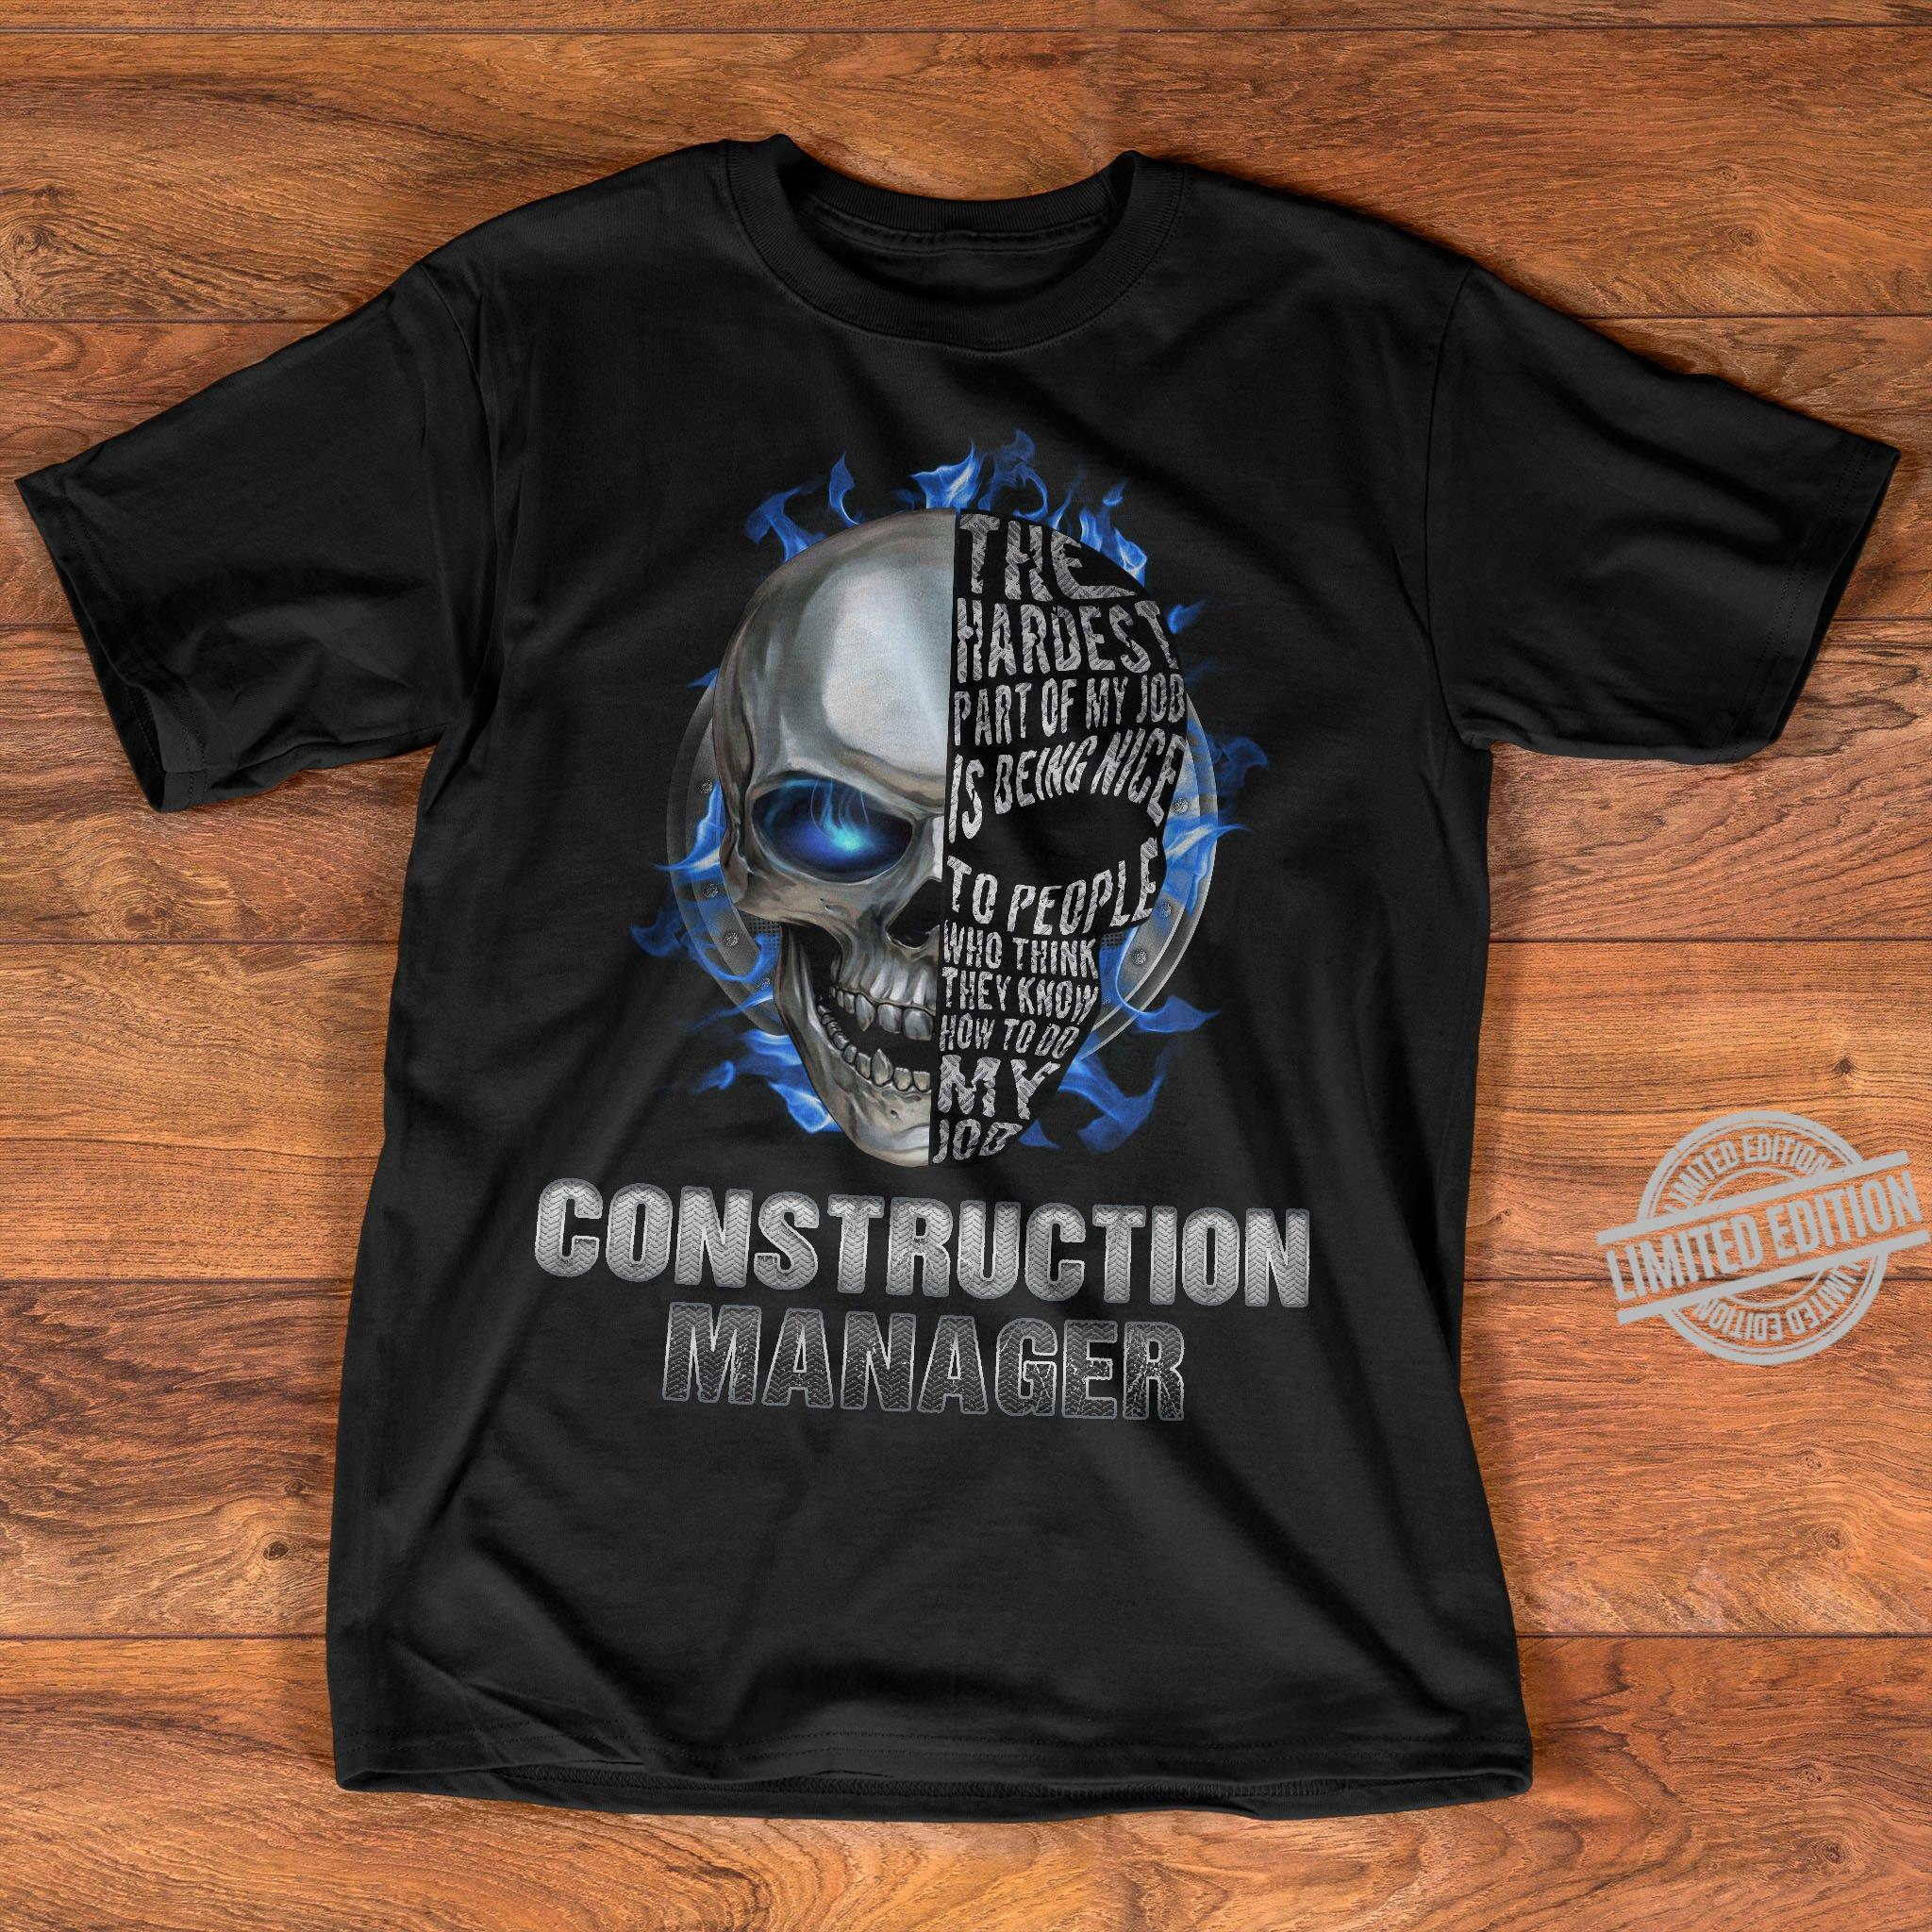 The Hardest Part Of My Job Is Being Nice To People Who Think They Know How To Do My Job Construction Manager Shirt